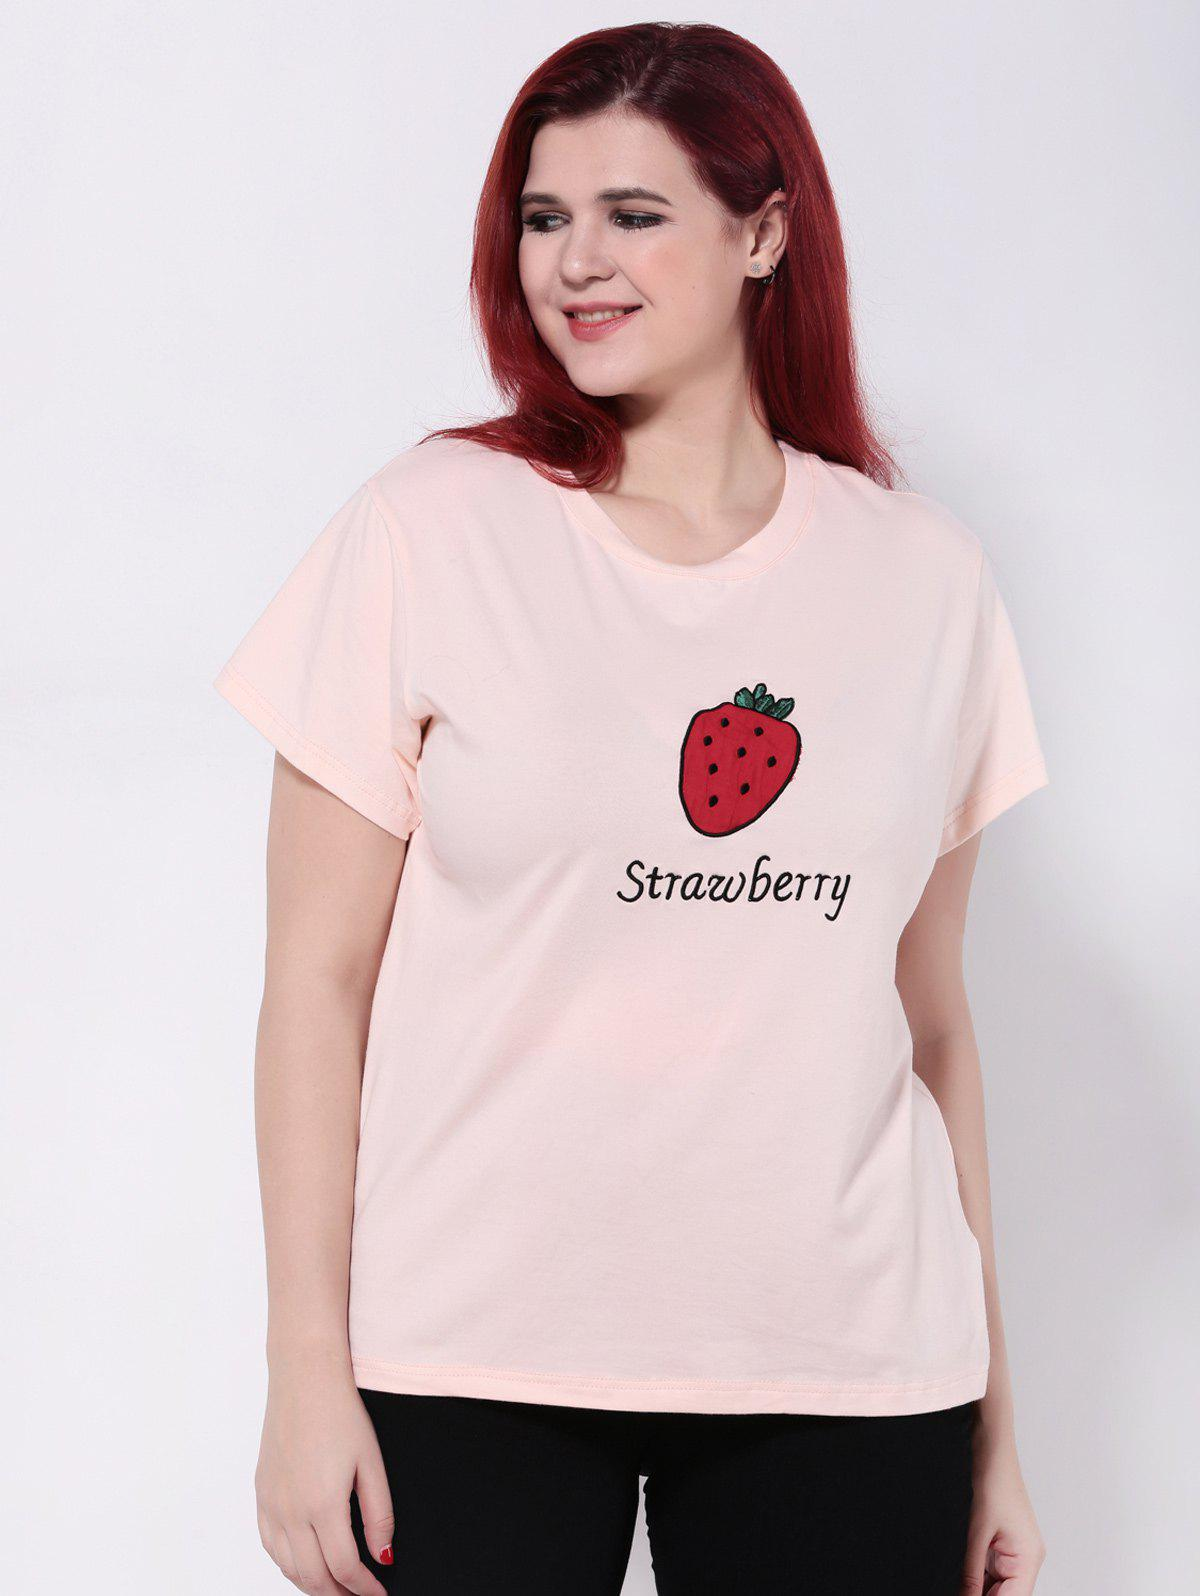 2018 strawberry imprimer manches courtes t shirt rose clair xl in t shirts de grande taille. Black Bedroom Furniture Sets. Home Design Ideas